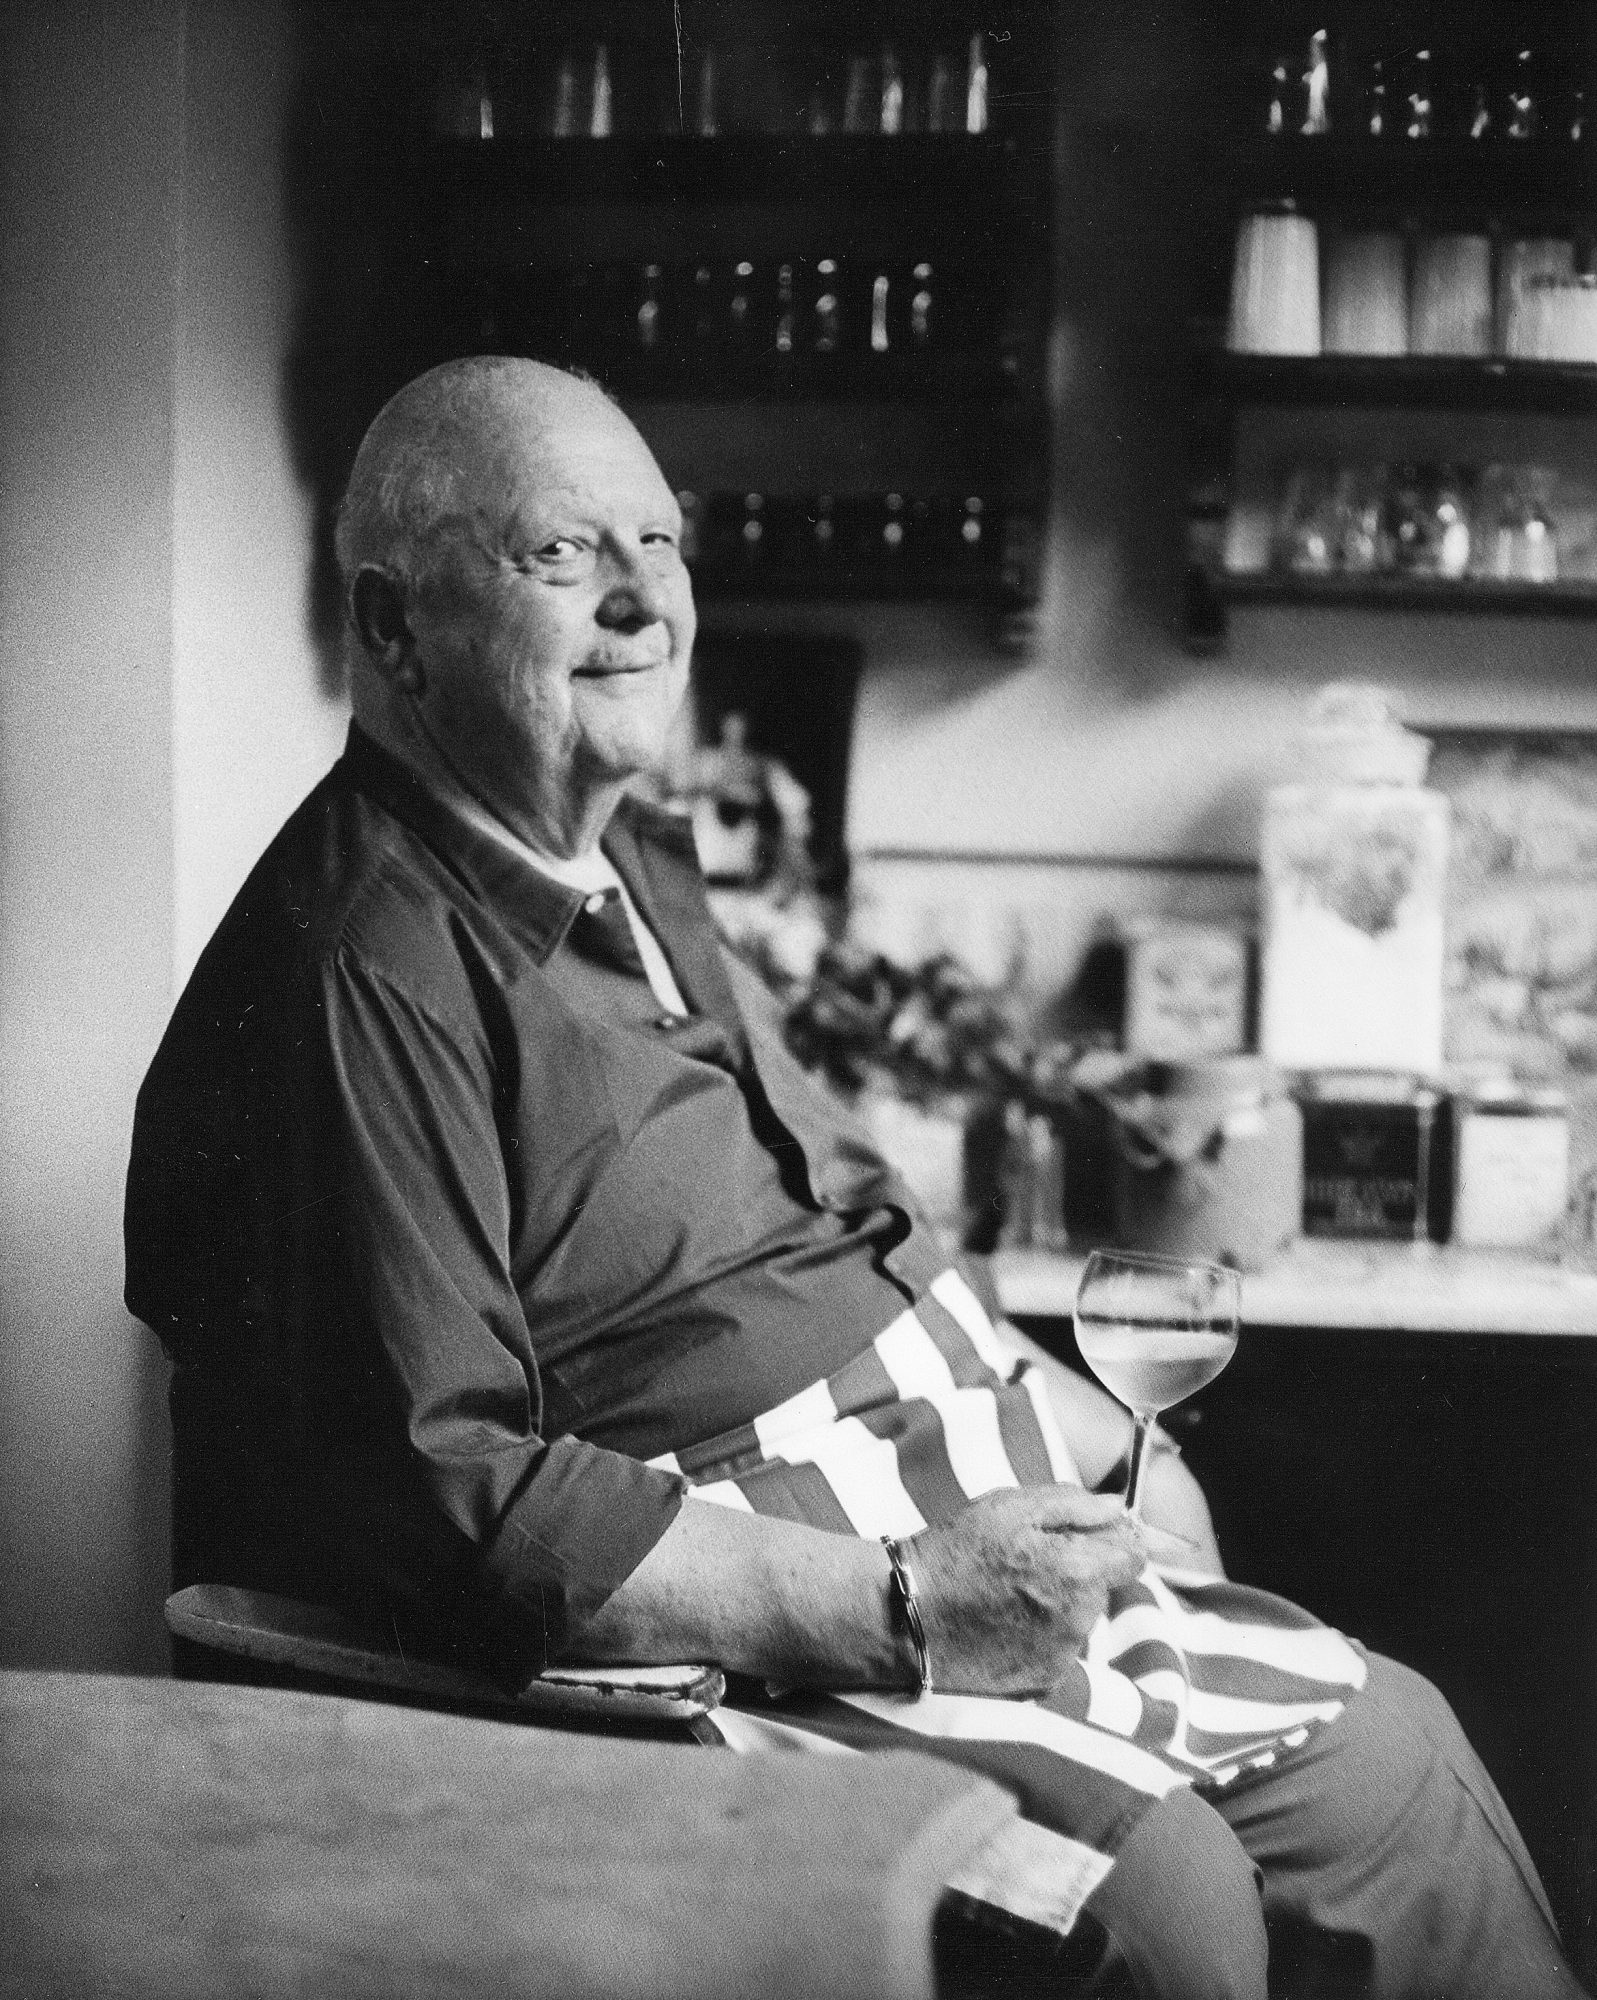 James Beard sitting in Kitchen